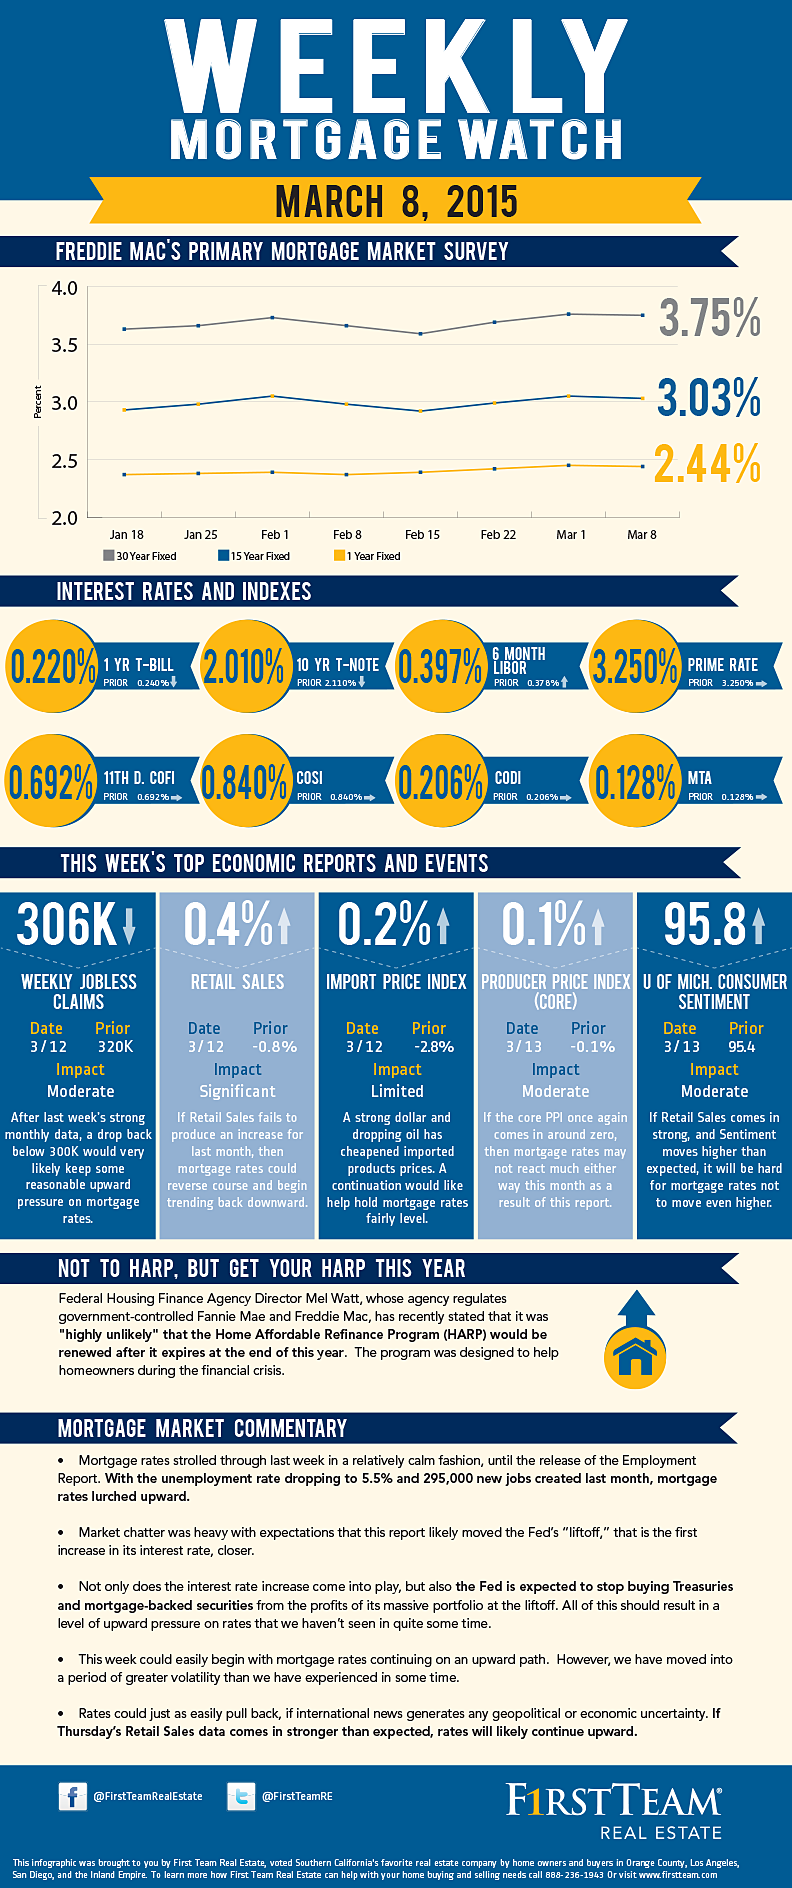 Weekly Mortgage Watch March 8, 2015 Real estate